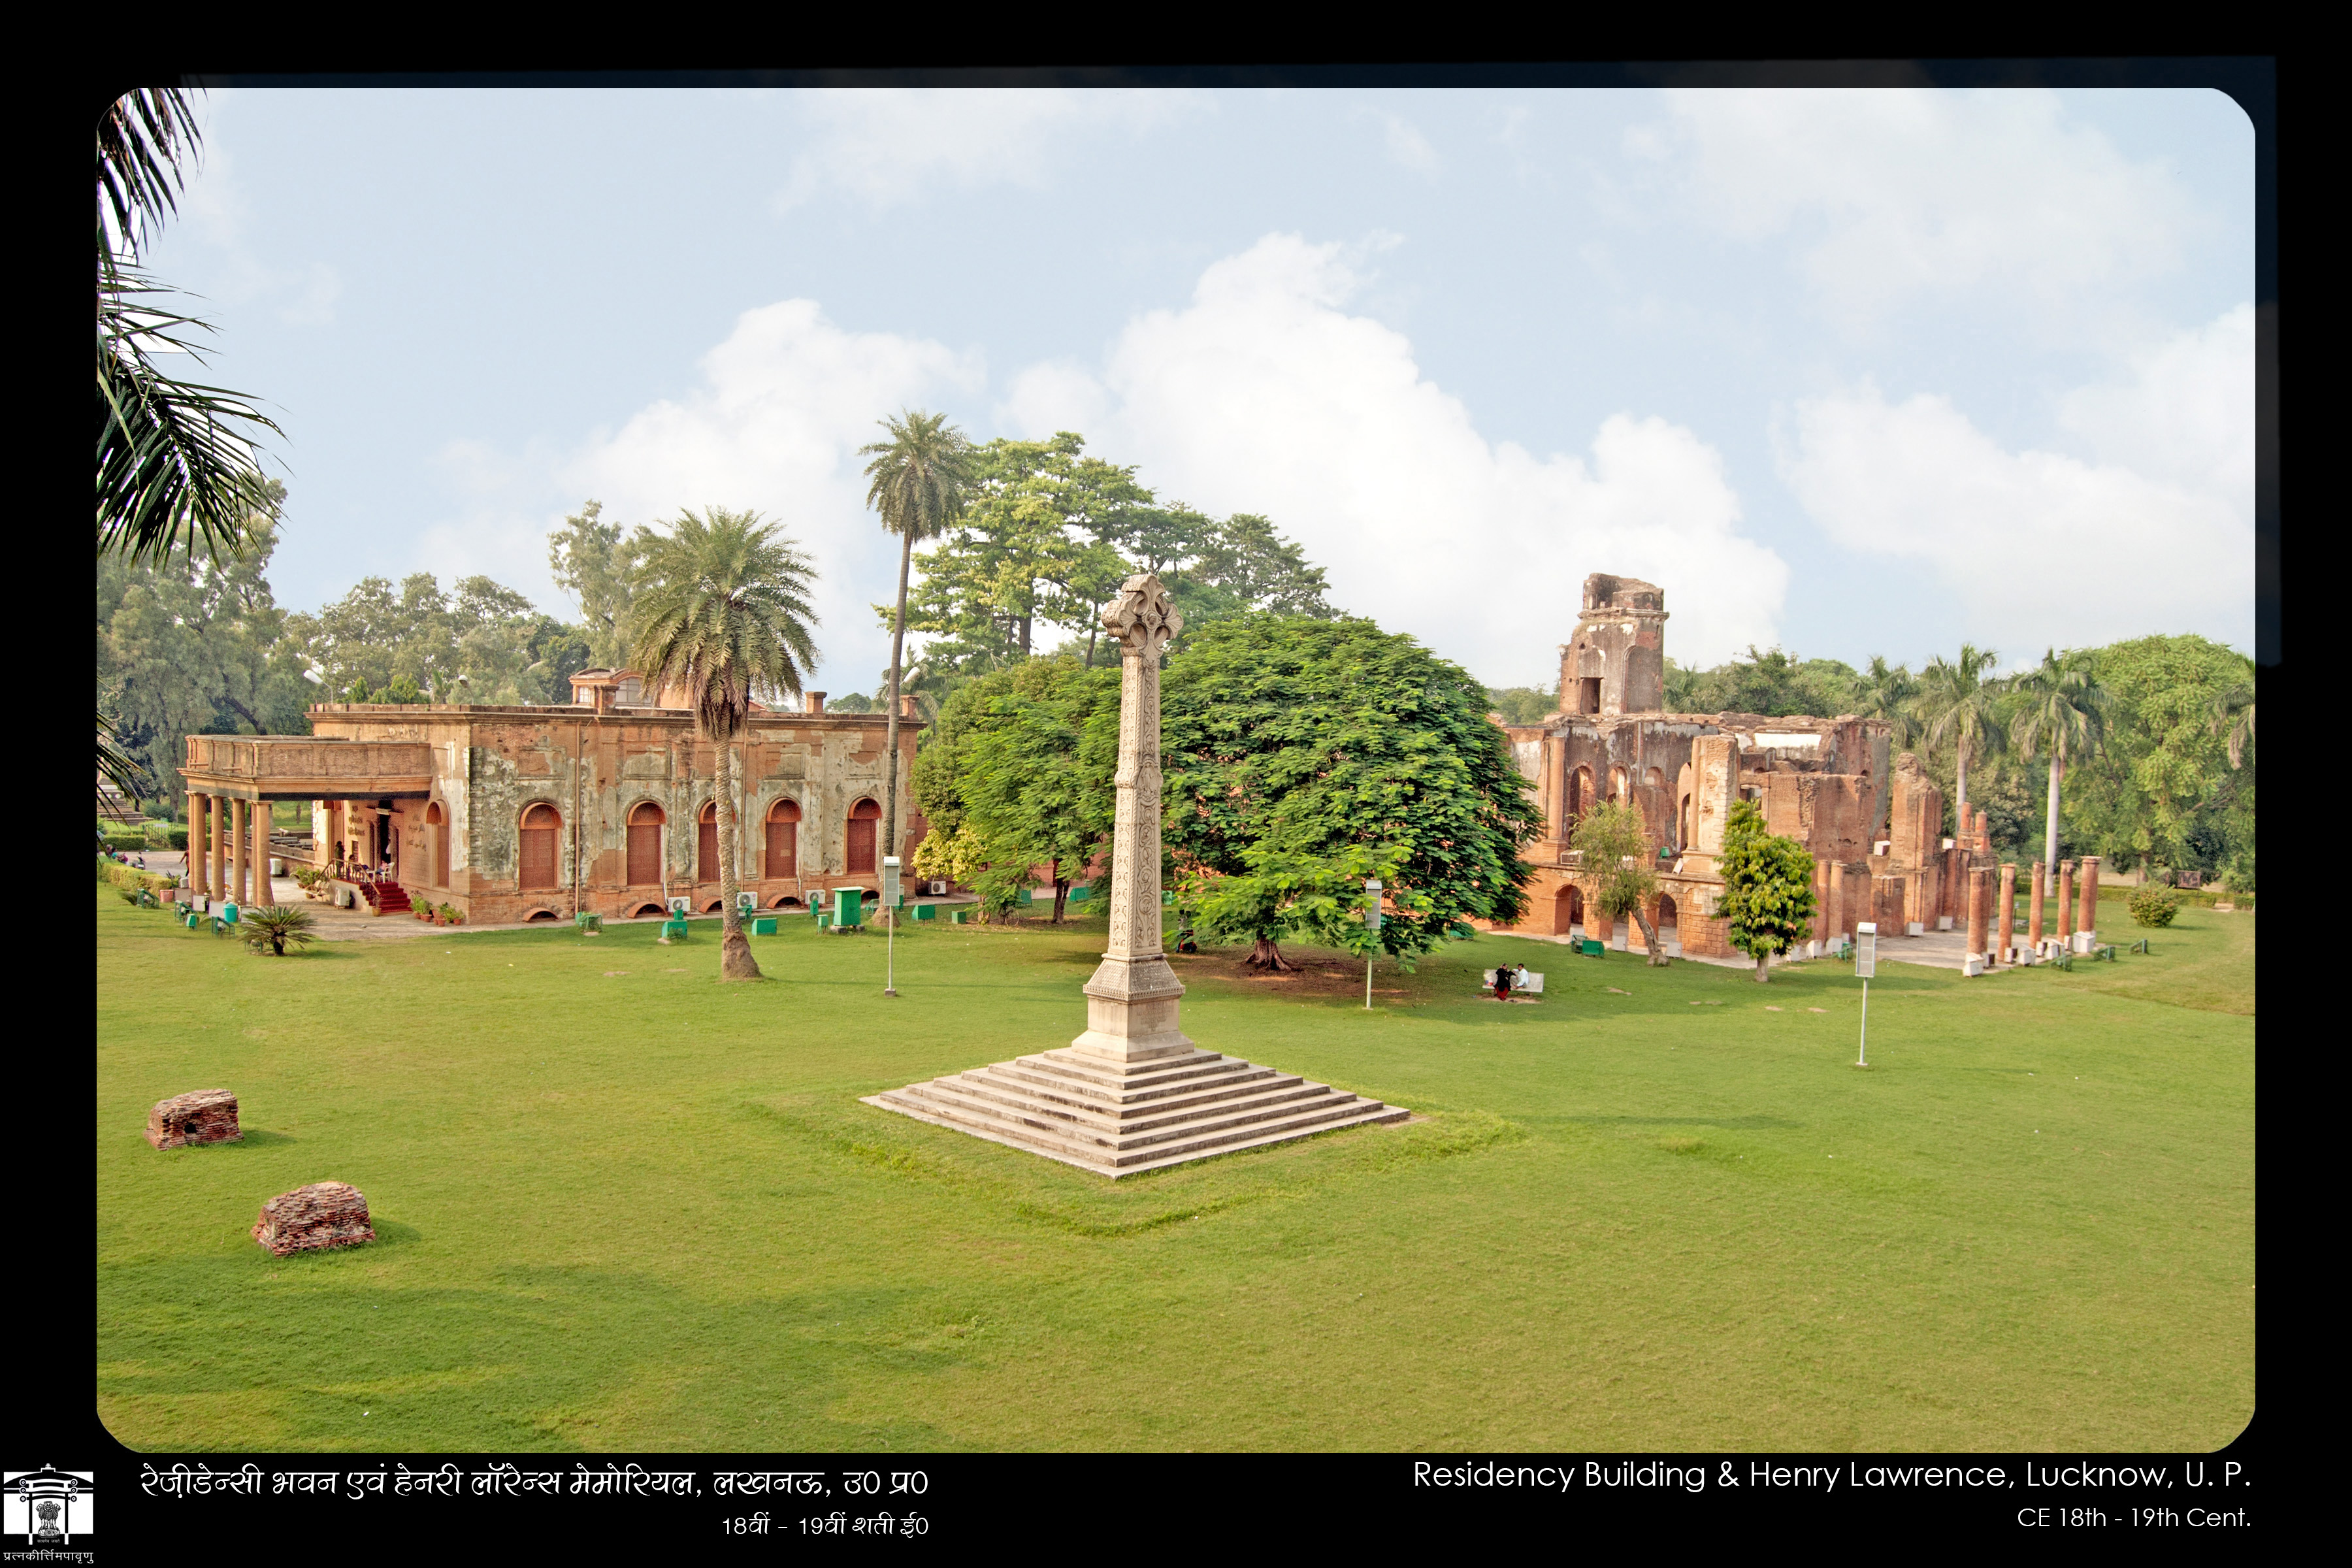 ASI Lucknow Circle | Archaeological Survey of India, Lucknow Circle